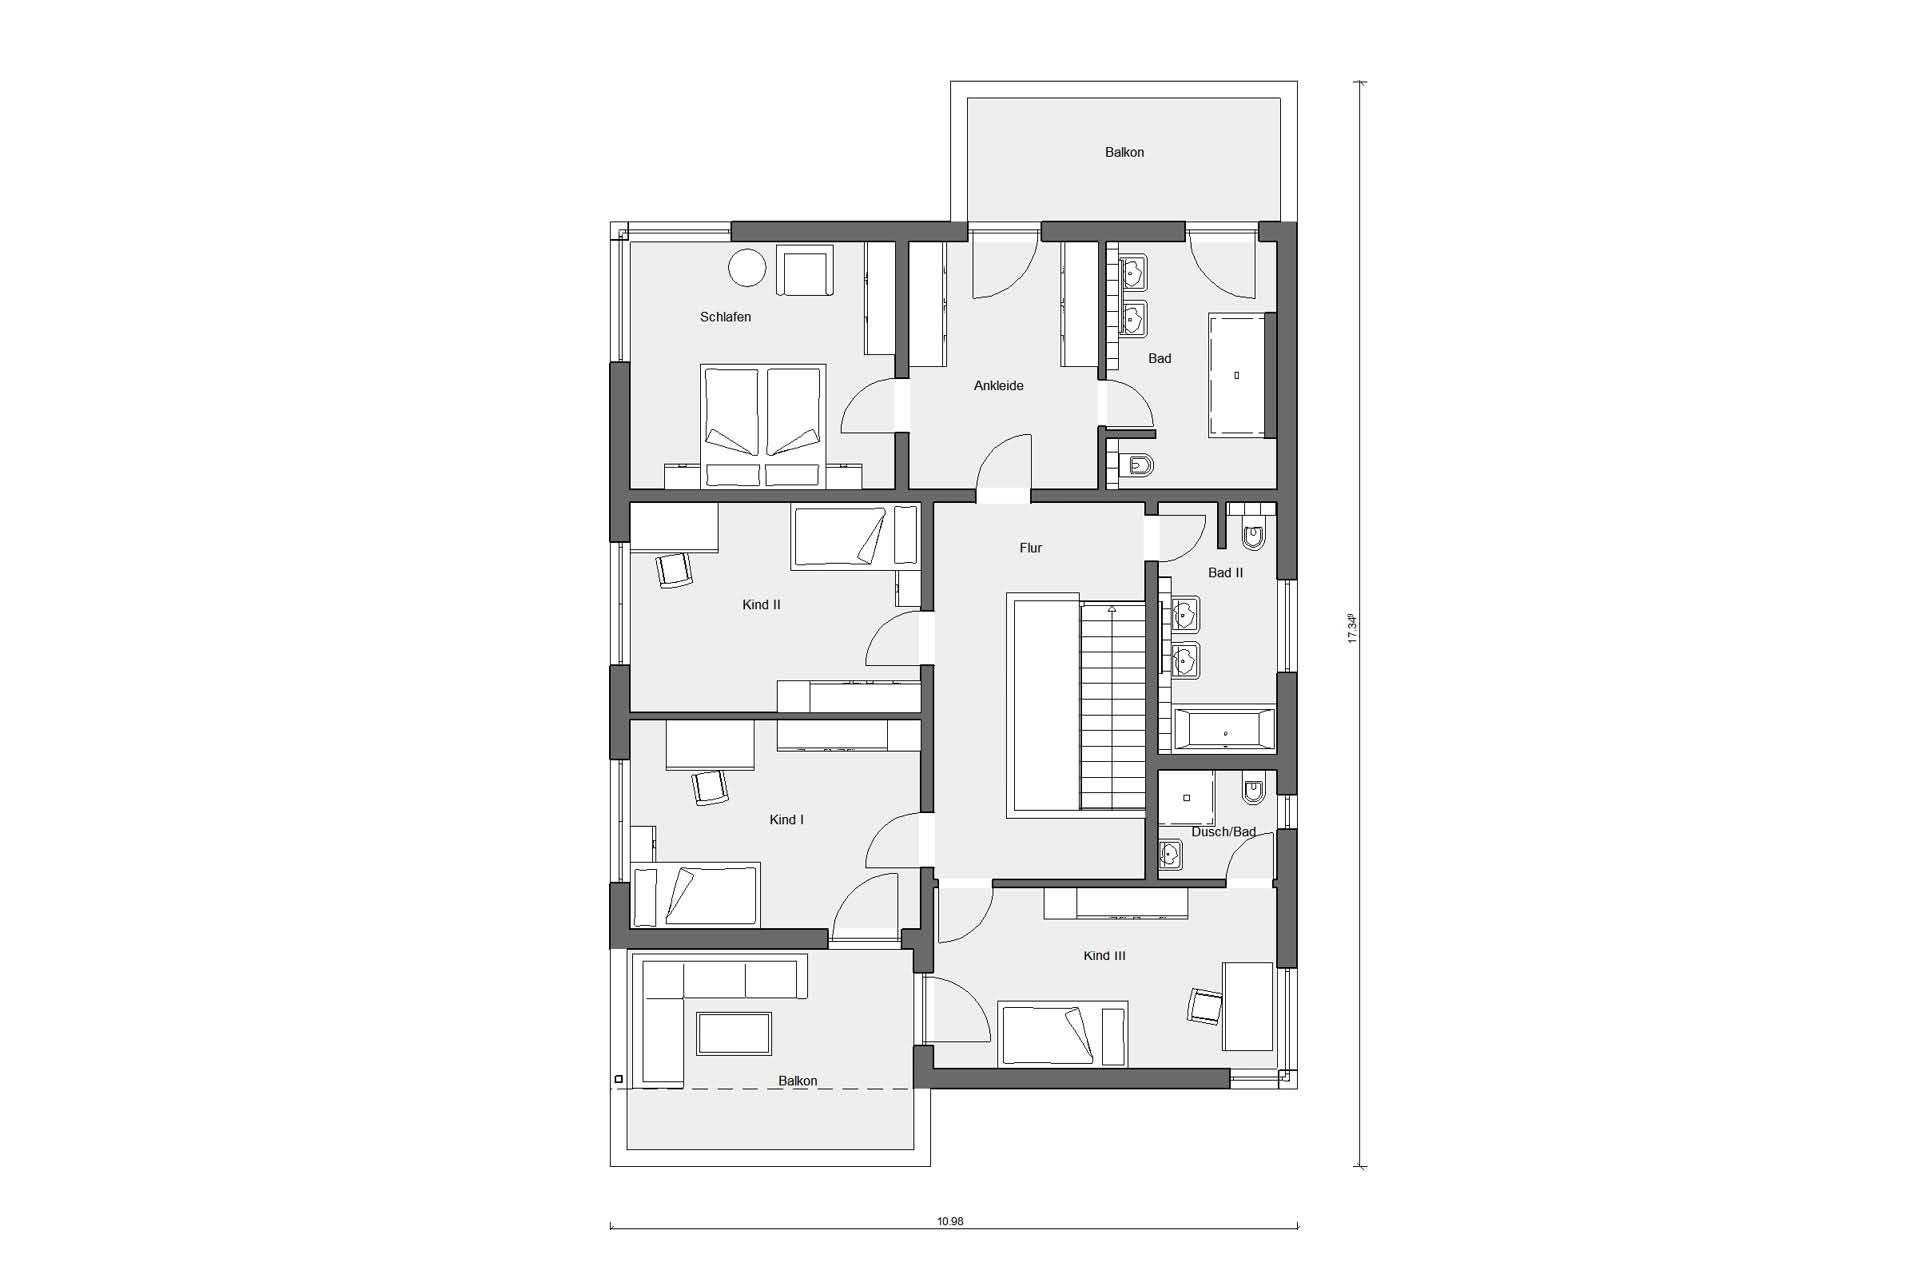 Ground floor attic Detached house Bauhaus style with flat roof E 20-207.1